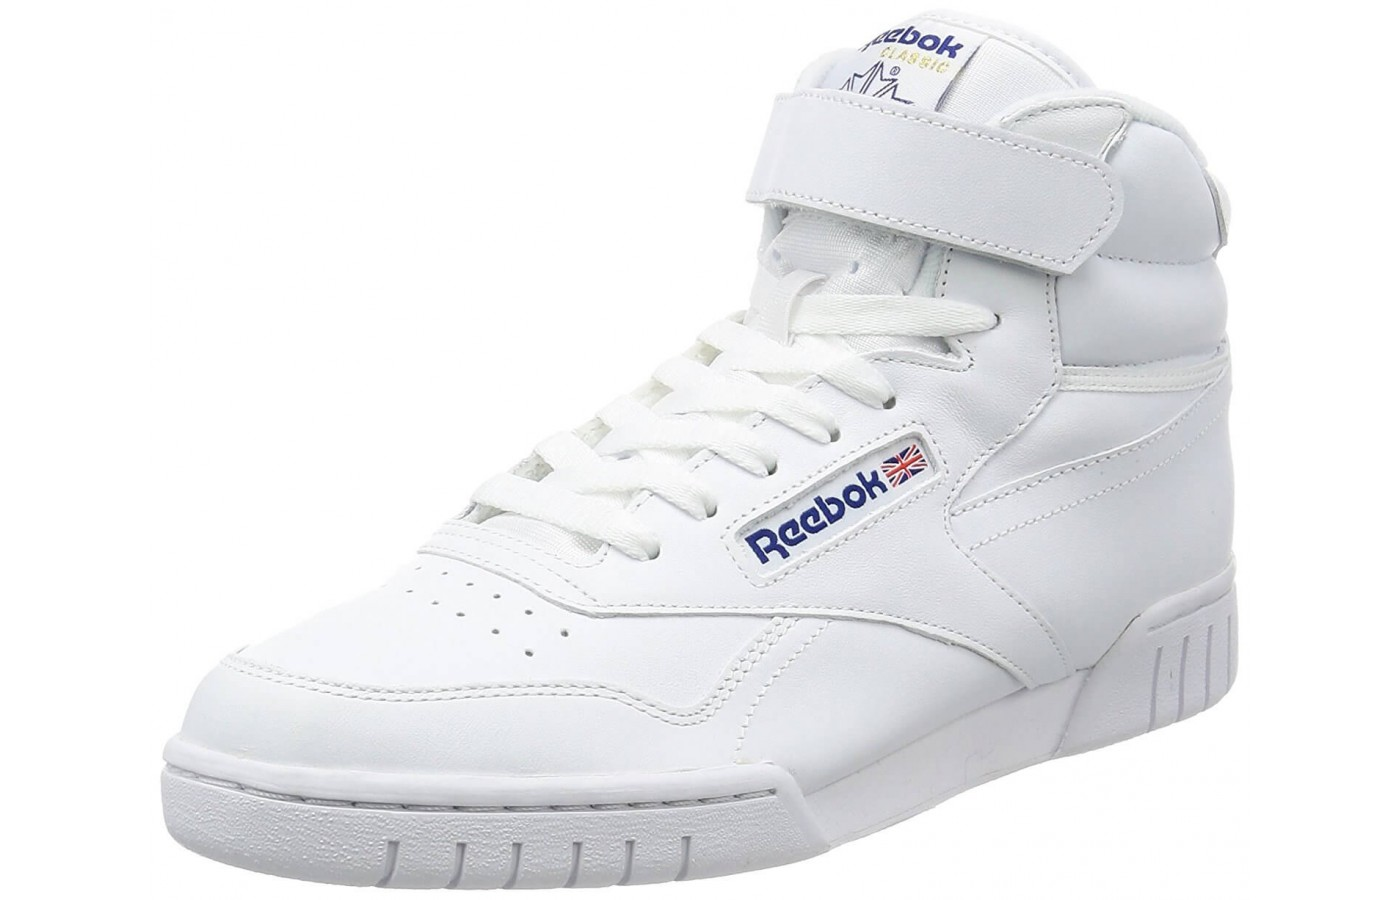 80a0caf6dfe The Reebok Ex-O-Fit Hi features a supportive high-cut design ...